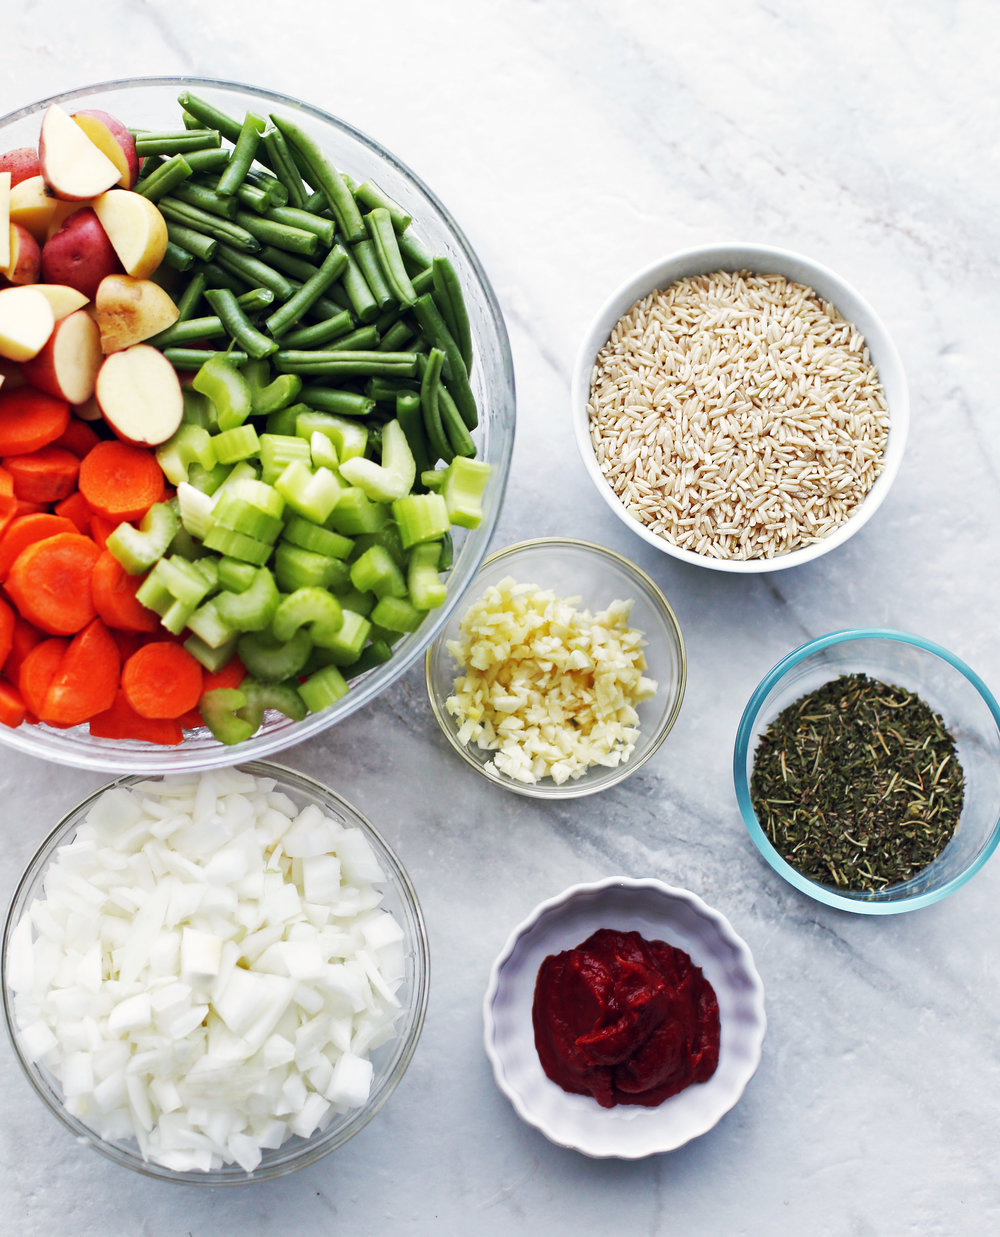 Six glass bowls with green beans, carrots, potatoes, celery, onions, garlic, ginger, brown rice, herbs, and tomato paste.